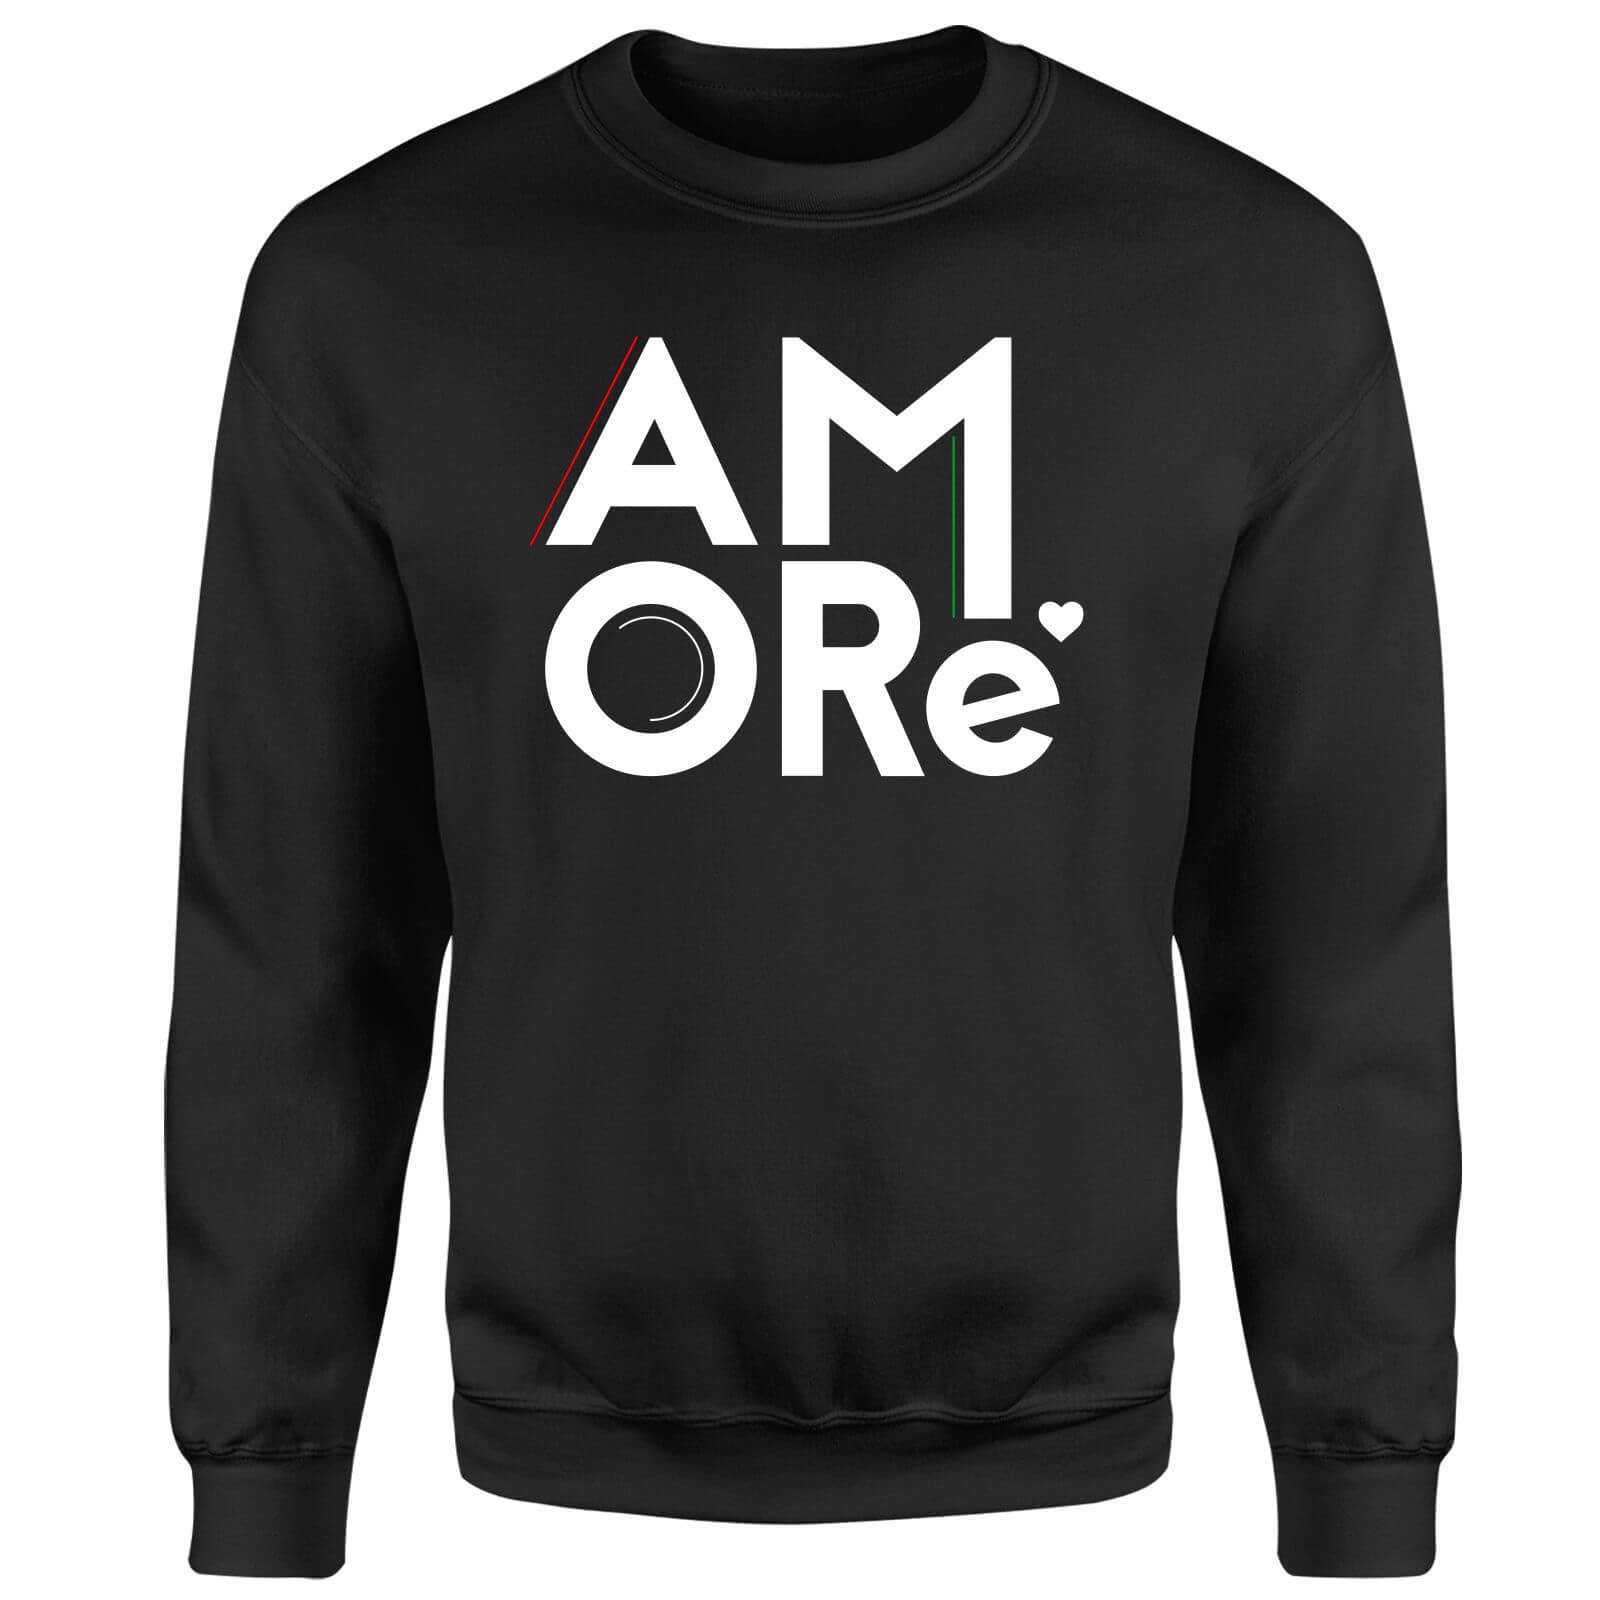 Amore Sweatshirt - Black